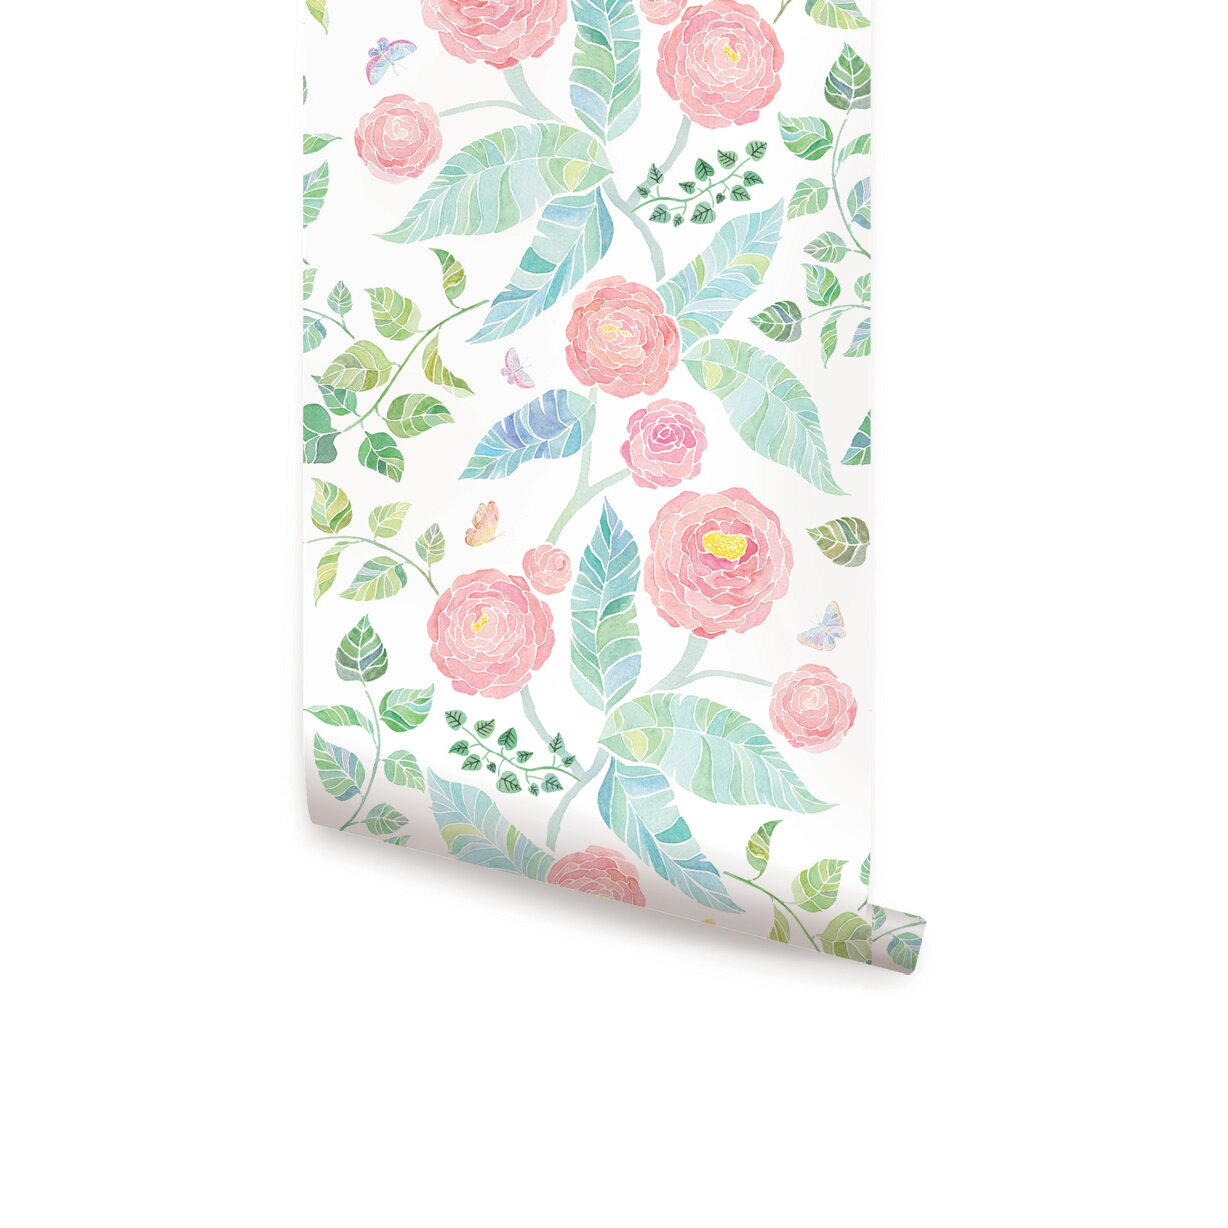 Simpleshapes spring garden flowers peel and stick panel Floral peel and stick wallpaper